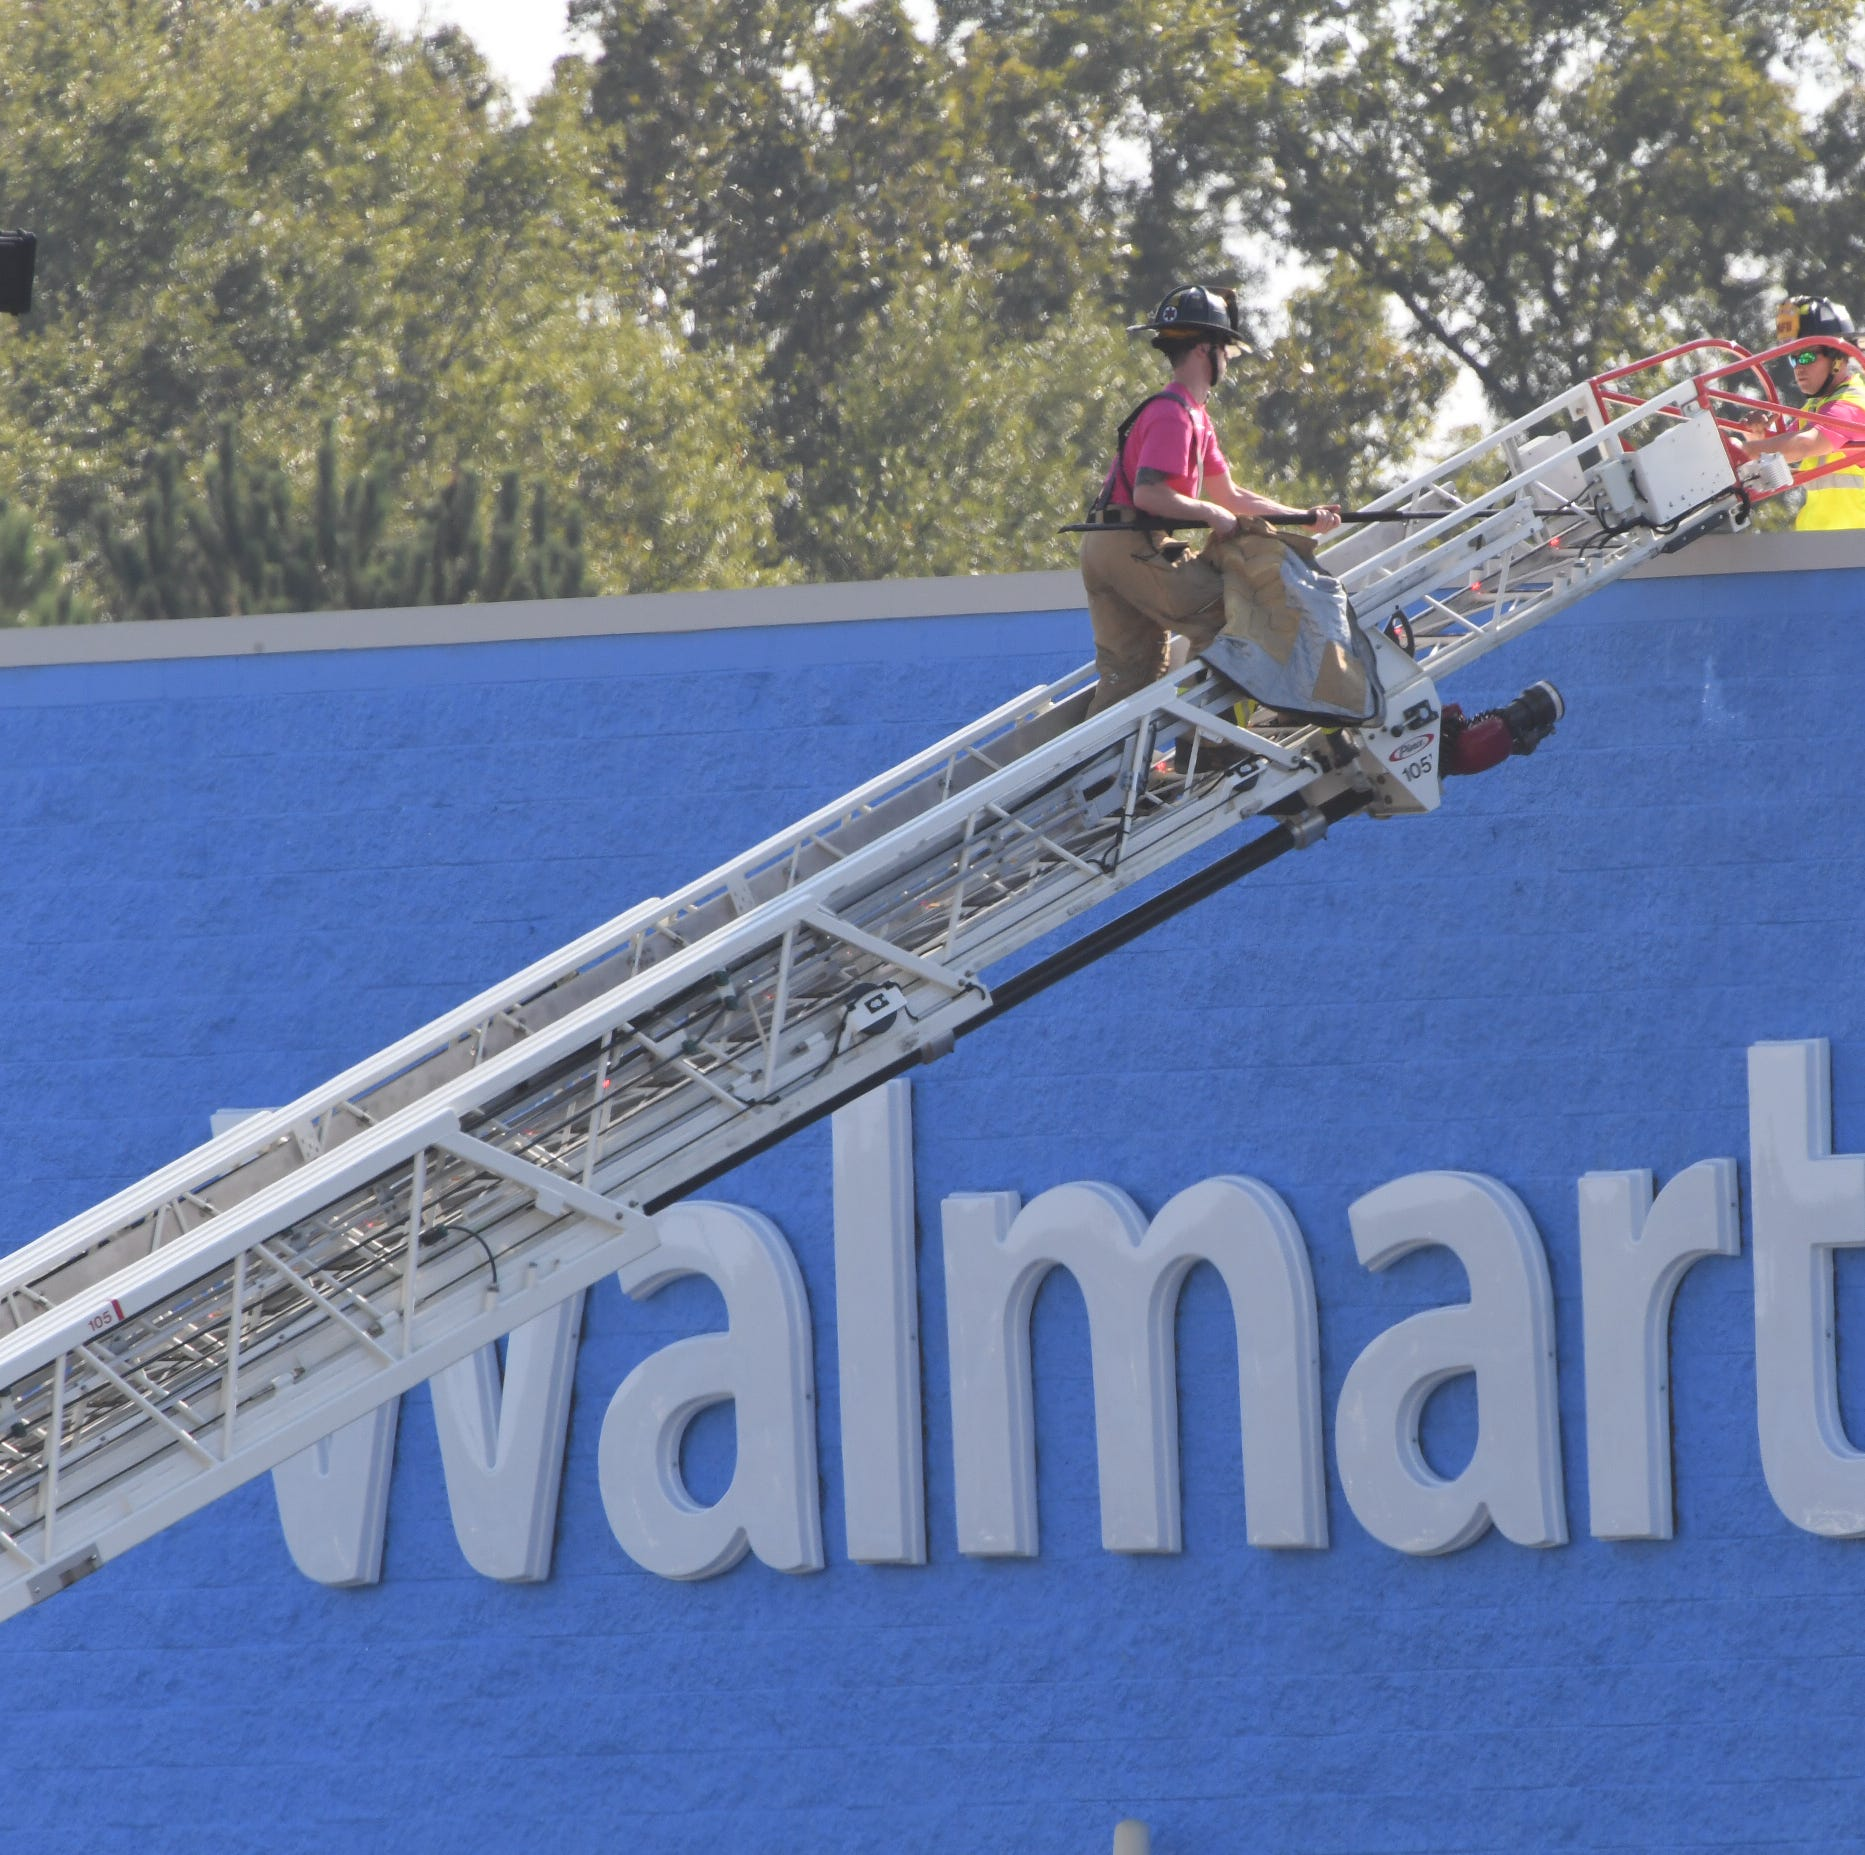 Fire at Anderson Walmart prompts police investigation, arson suspected